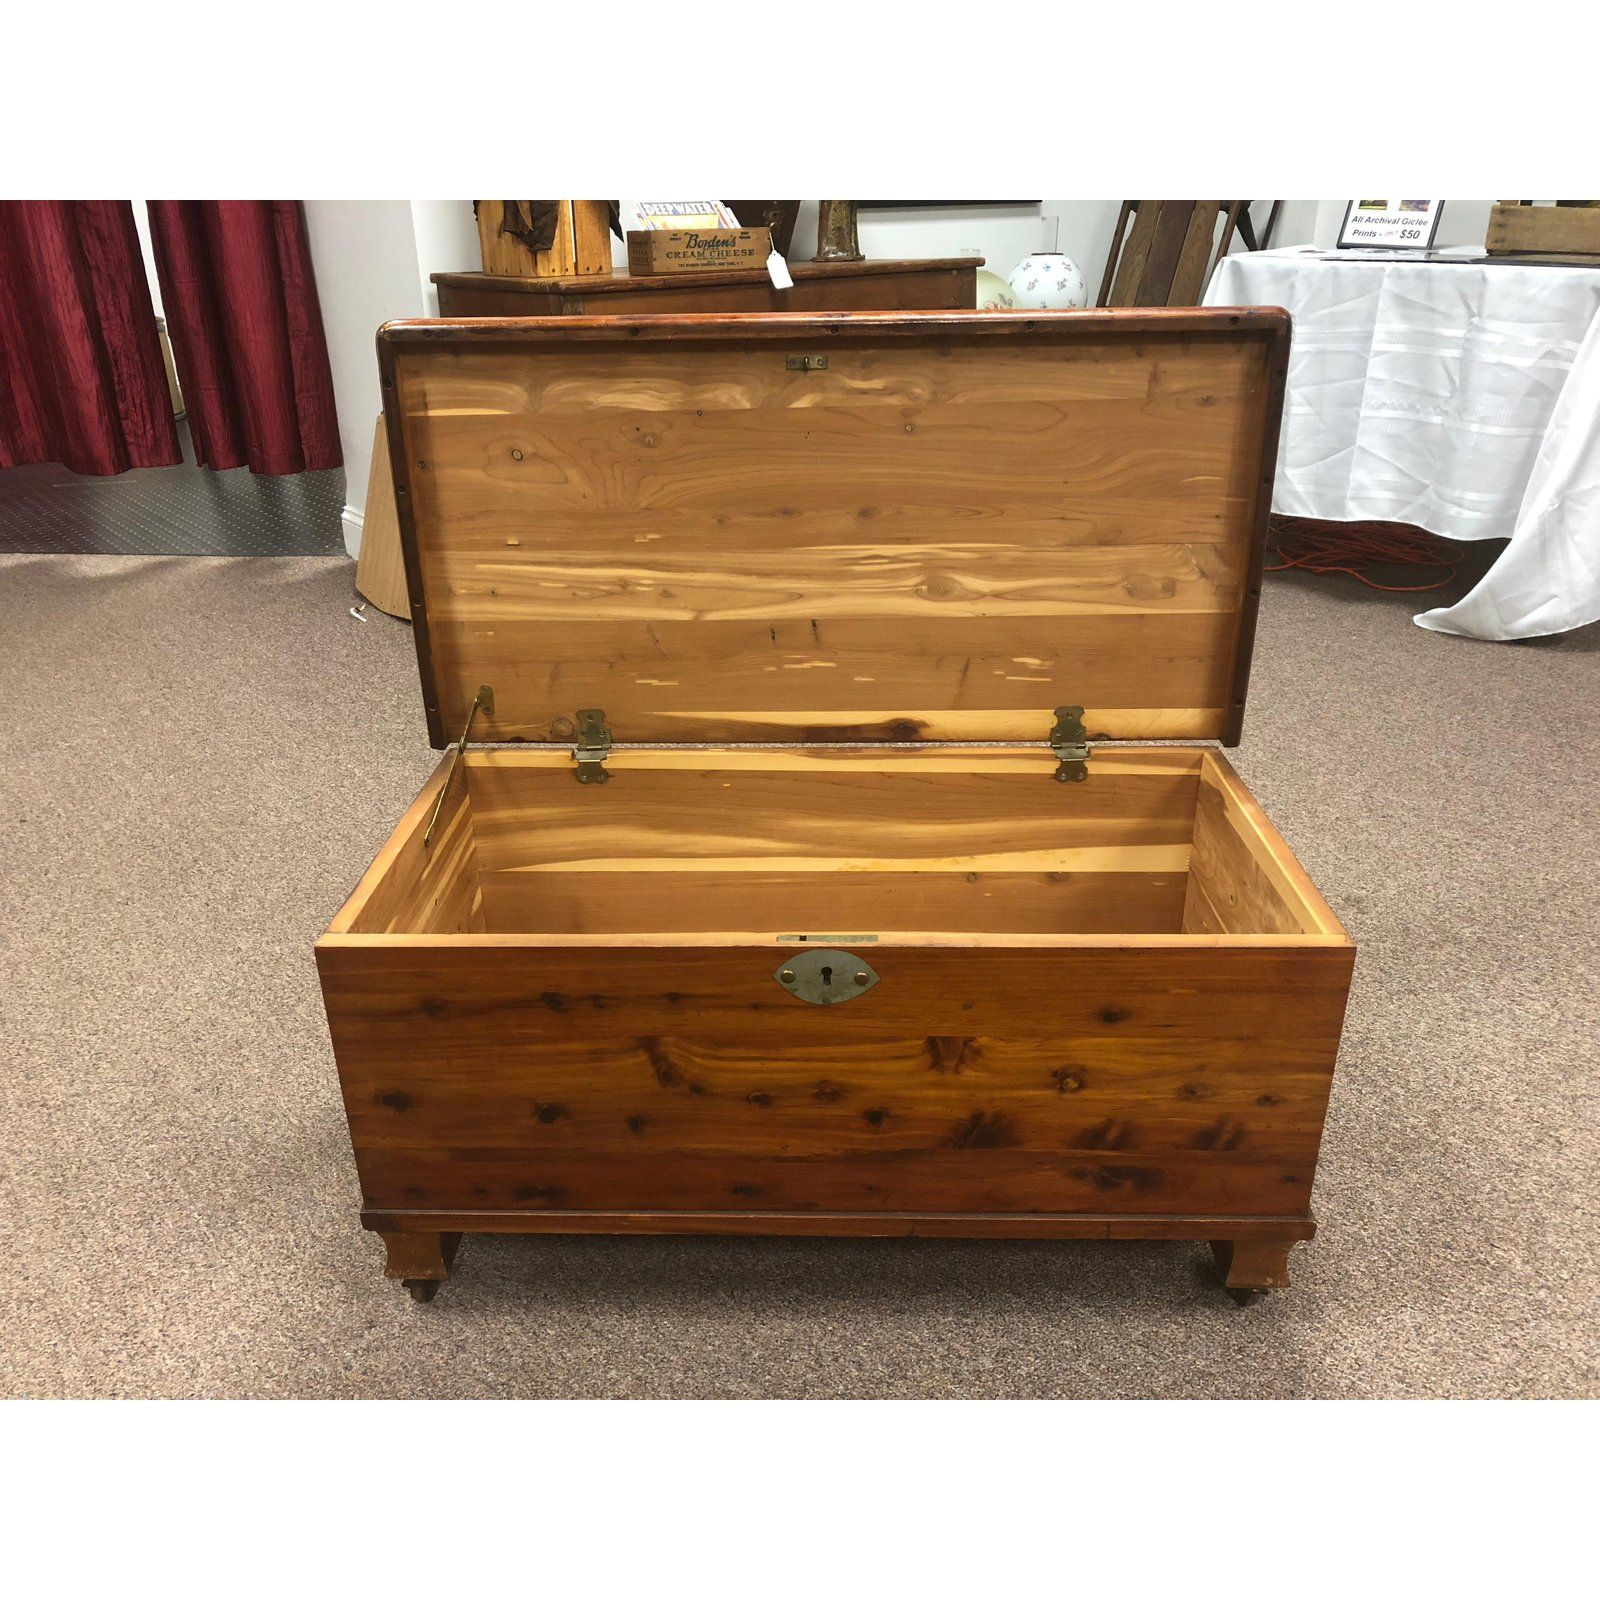 This 1940s Cedar Chest Is On Caster Wheels It Is In Great Shape And Would Make A Perfect Addition To Hold Sheets Cedar Chest Wooden Chest Blanket Chest